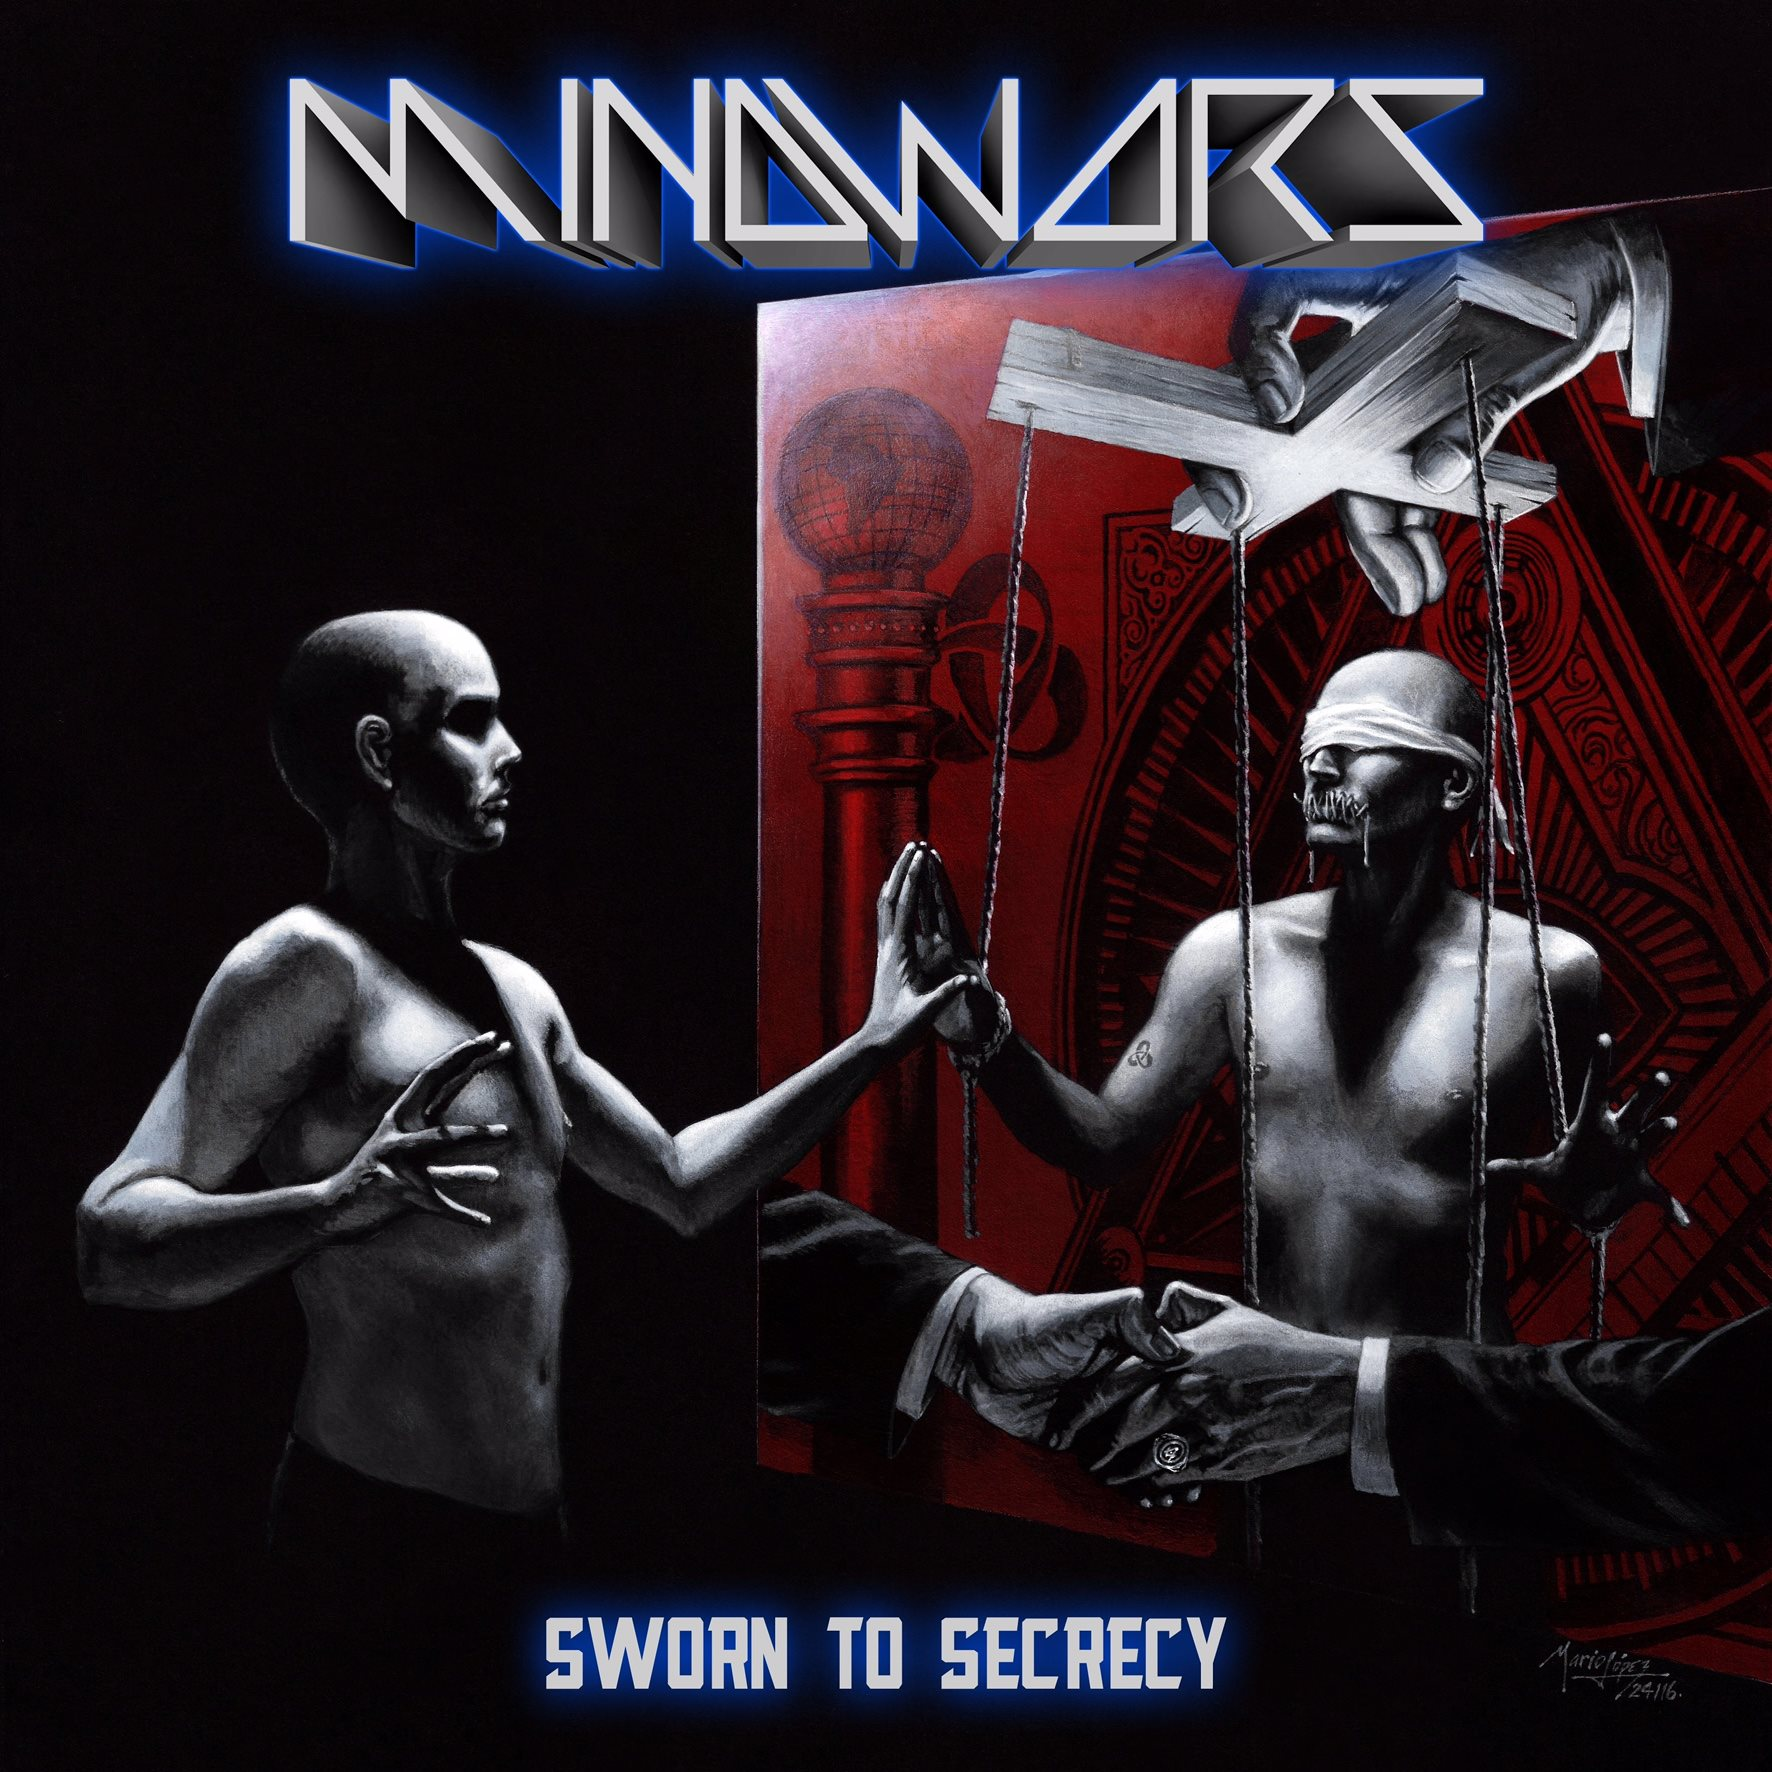 Mindwars, 'Sworn To Secrecy', Punishment 18 Records (2016), artwork by Mario Lopez